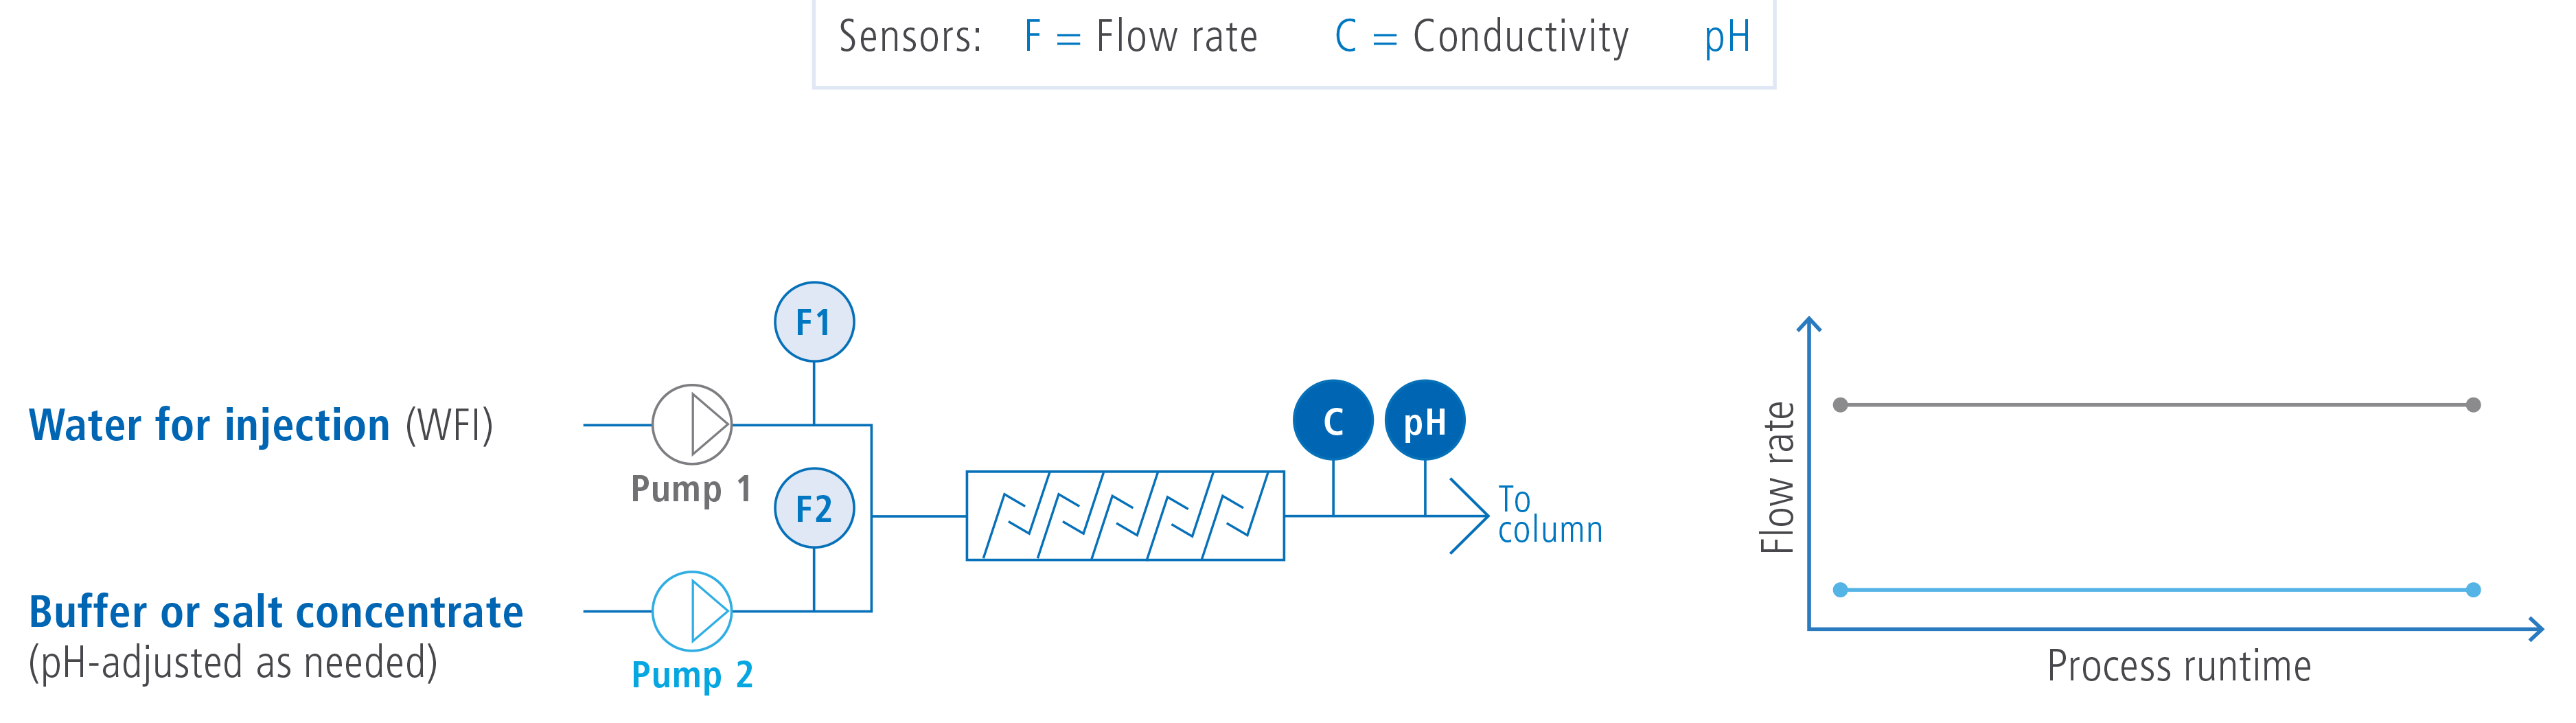 sensors flow rate and conductivity 3